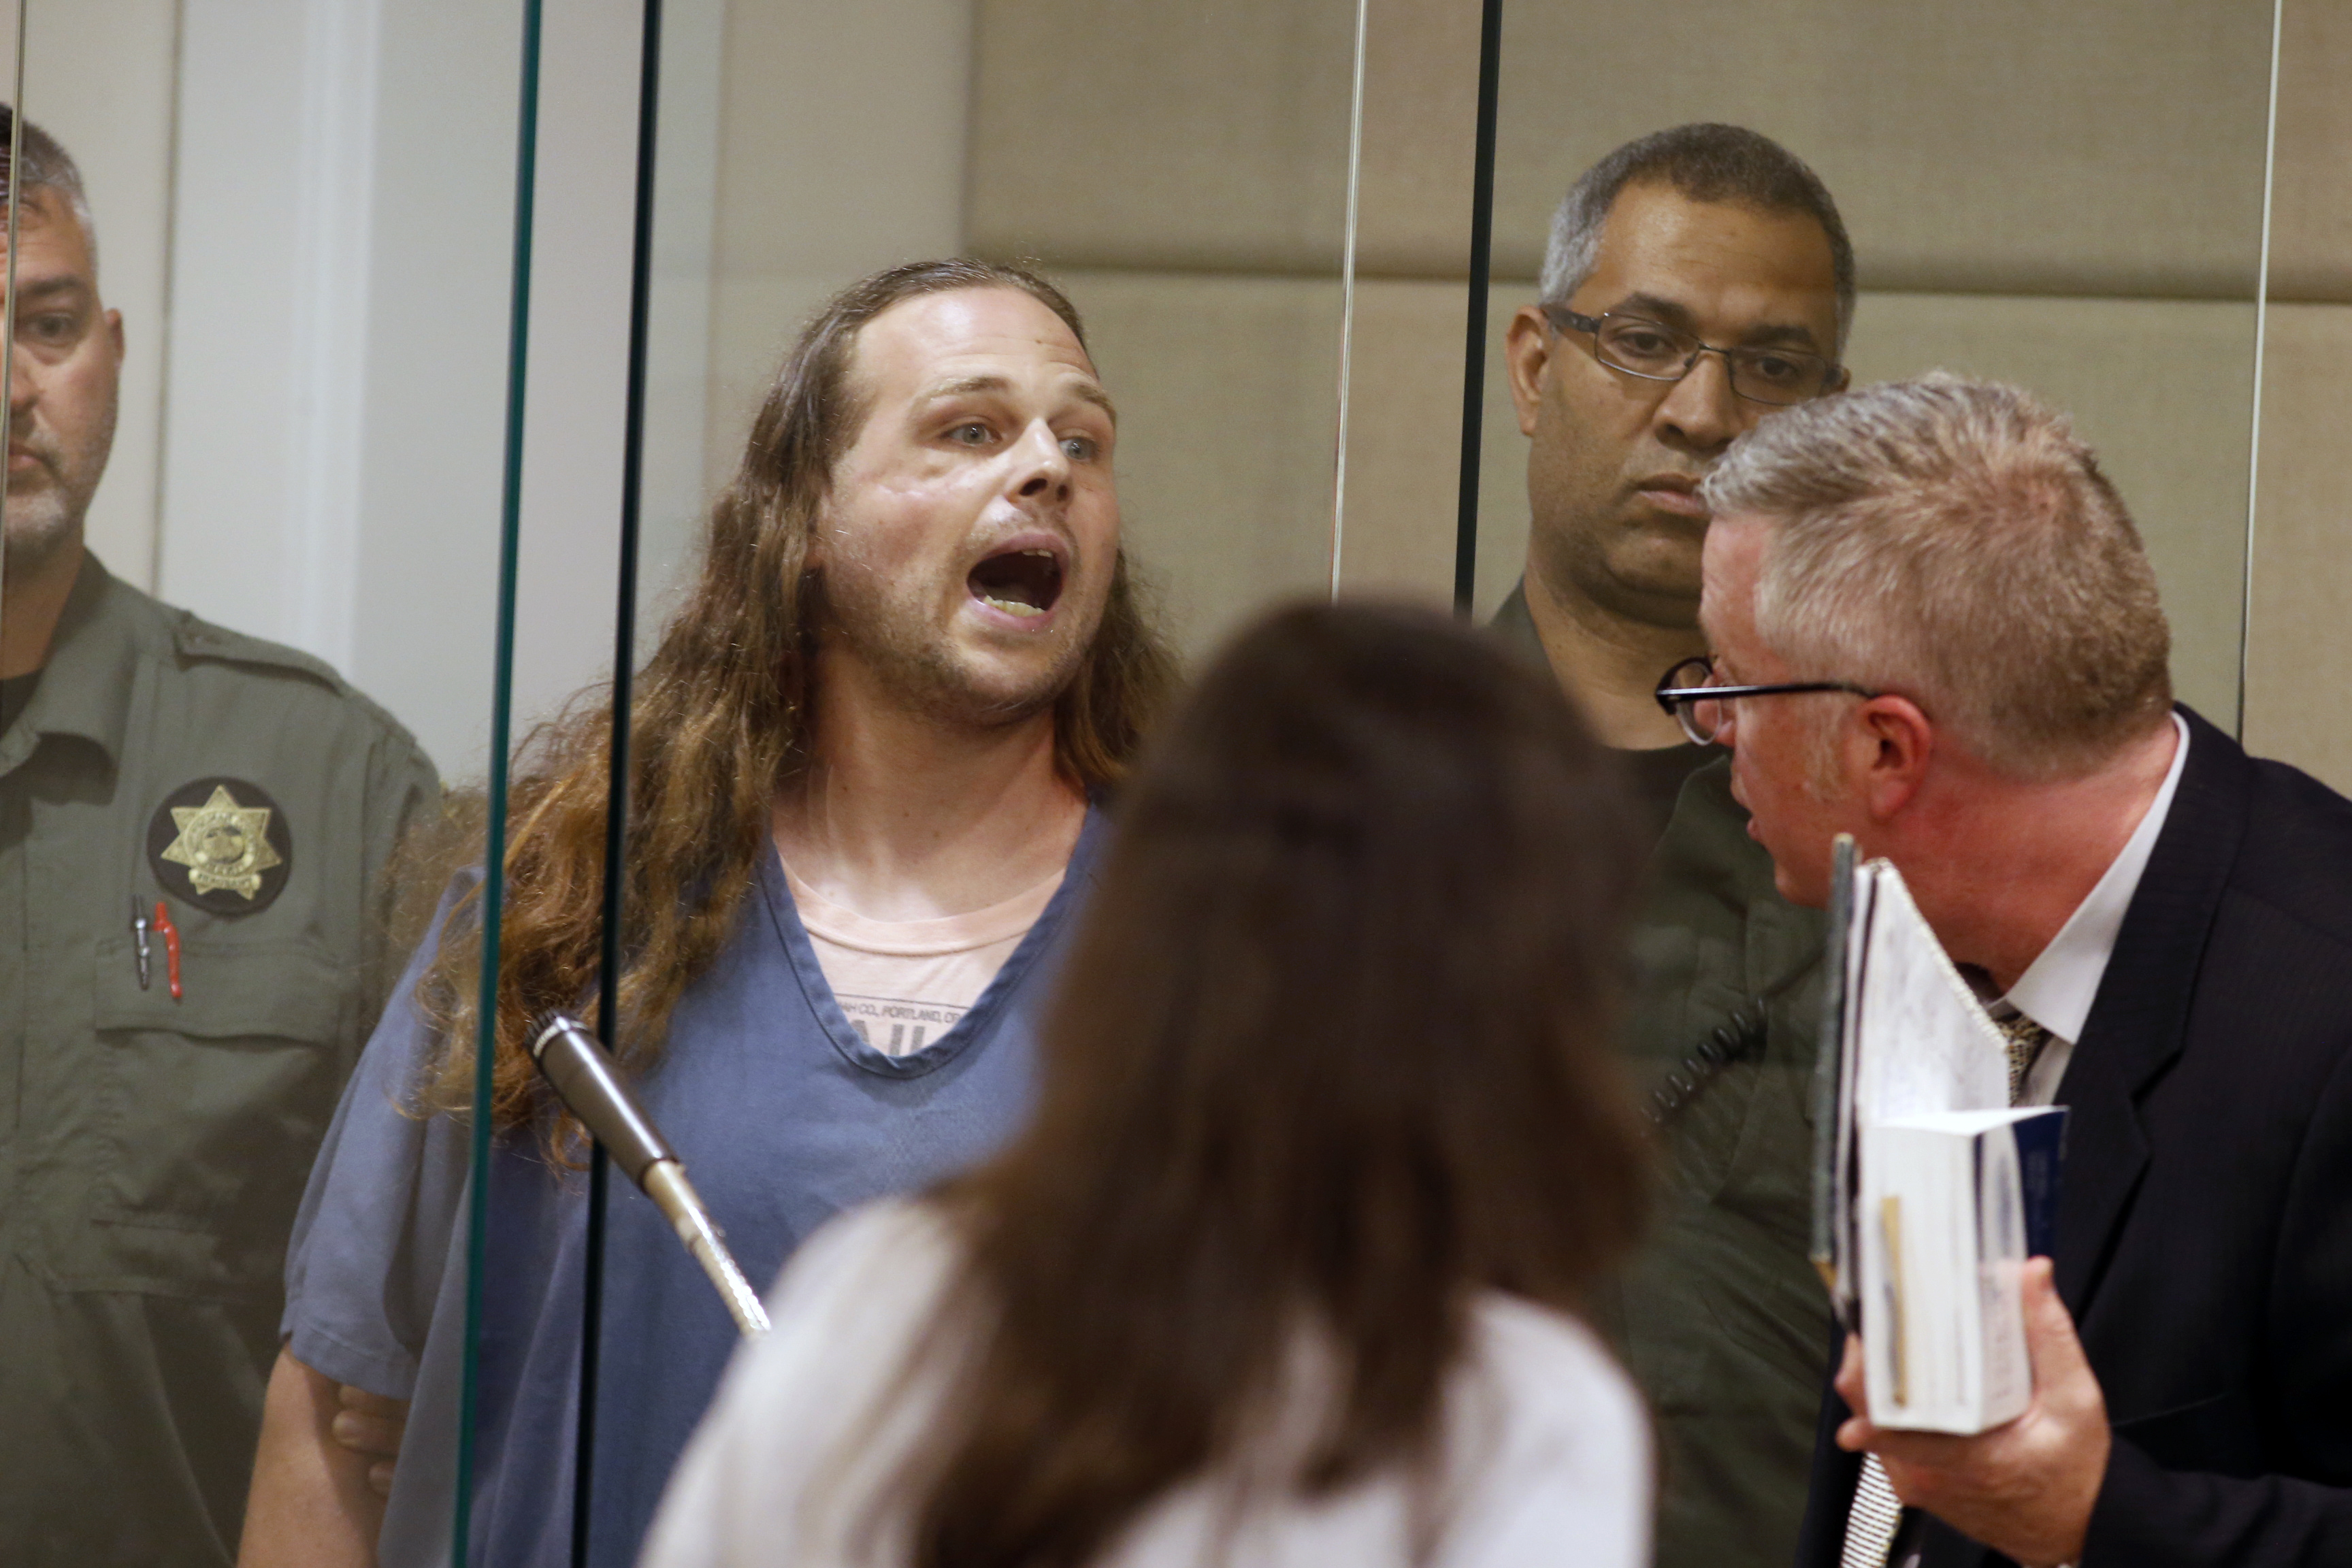 Jeremy Joseph Christian shouts as he is arraigned in Multnomah County Circuit Court in Portland, Ore., Tuesday, May 30, 2017. Authorities say Christian started verbally abusing two young women, including one wearing a hijab. When three men on the train intervened, police say, Christian attacked them, killing two and wounding one.